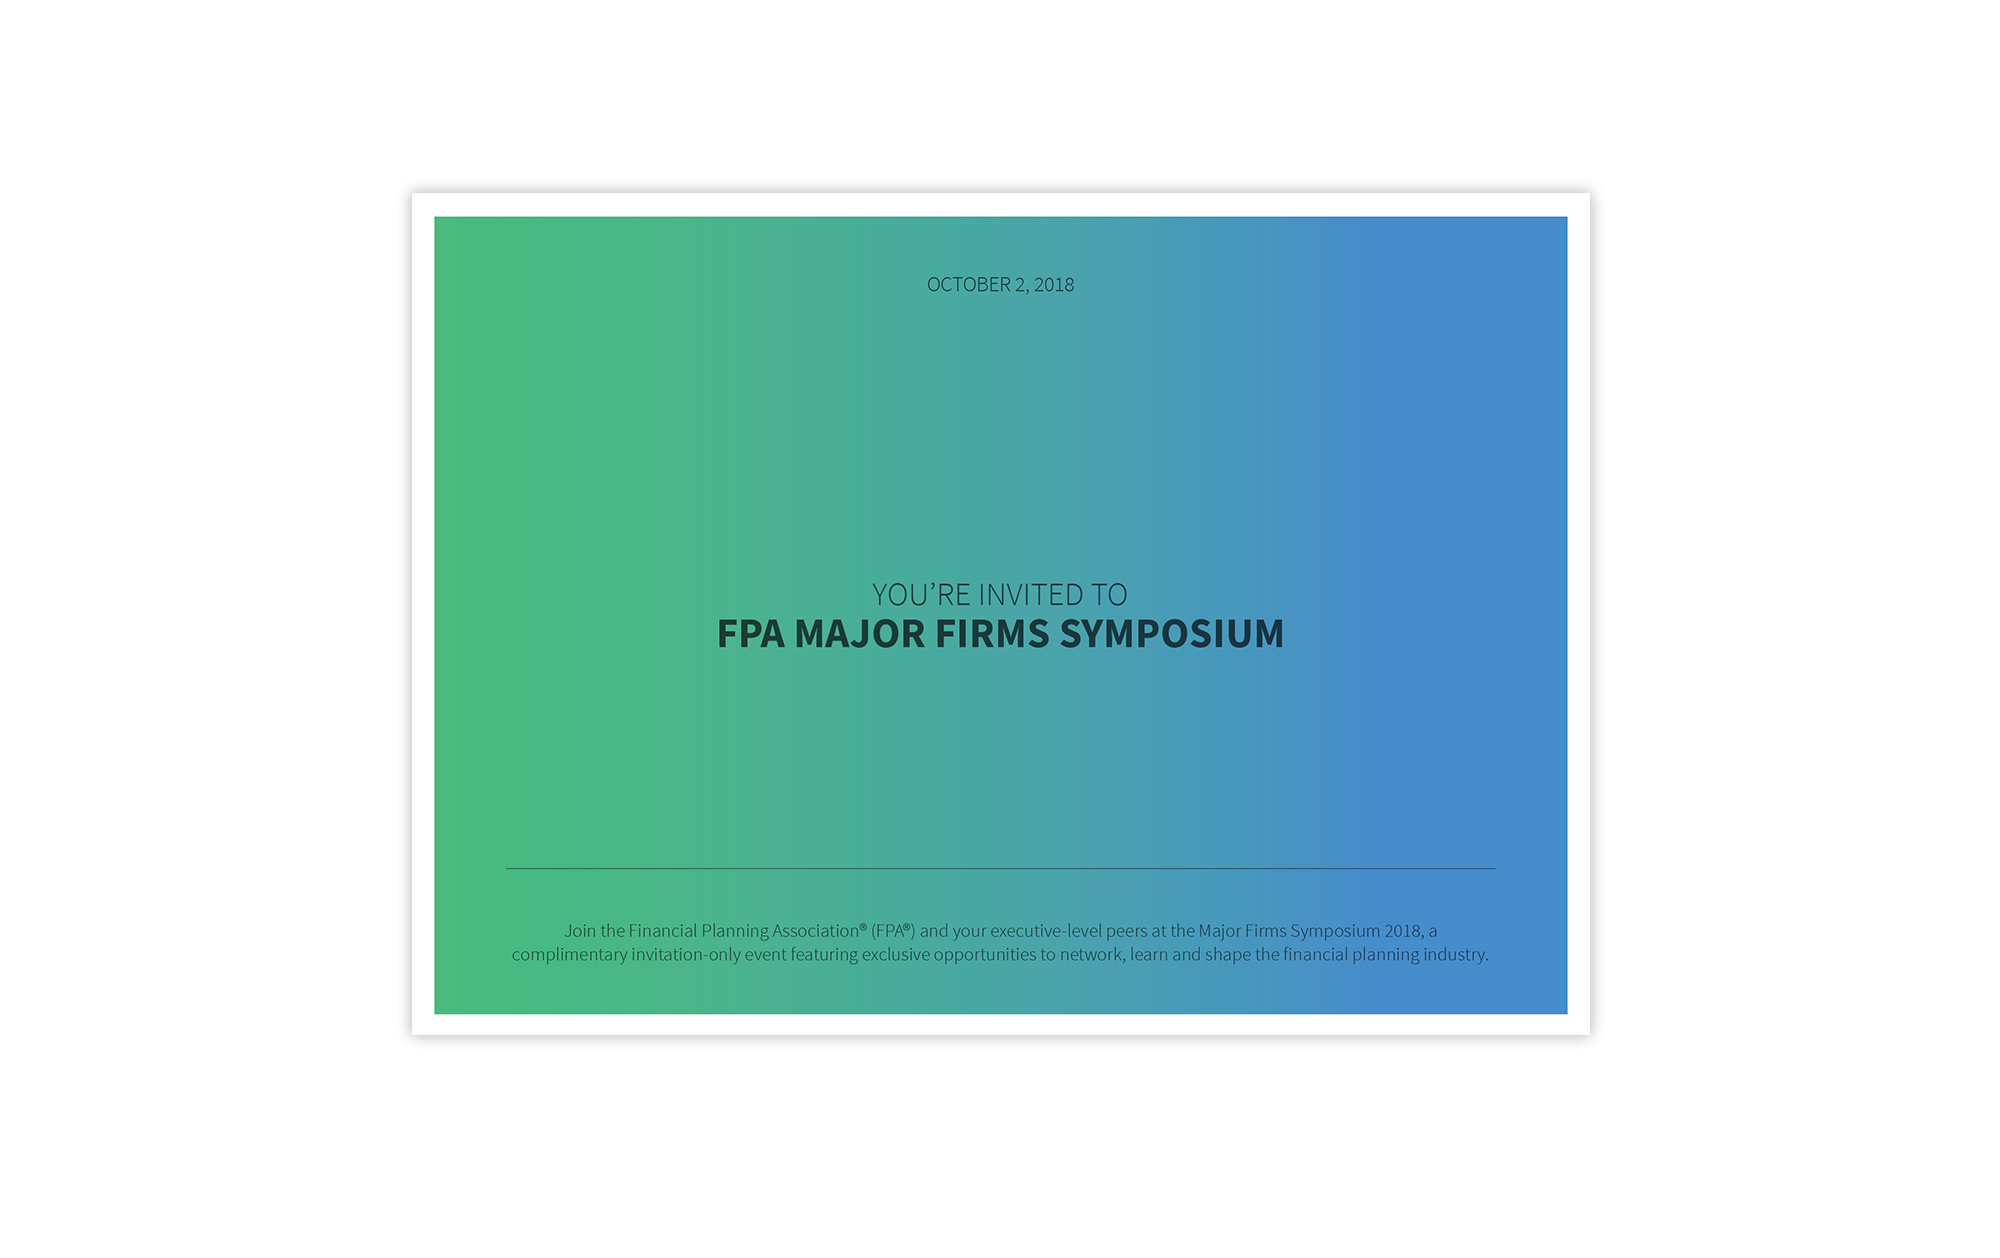 FPA-Major-Firms-Symposium-2-front.jpg